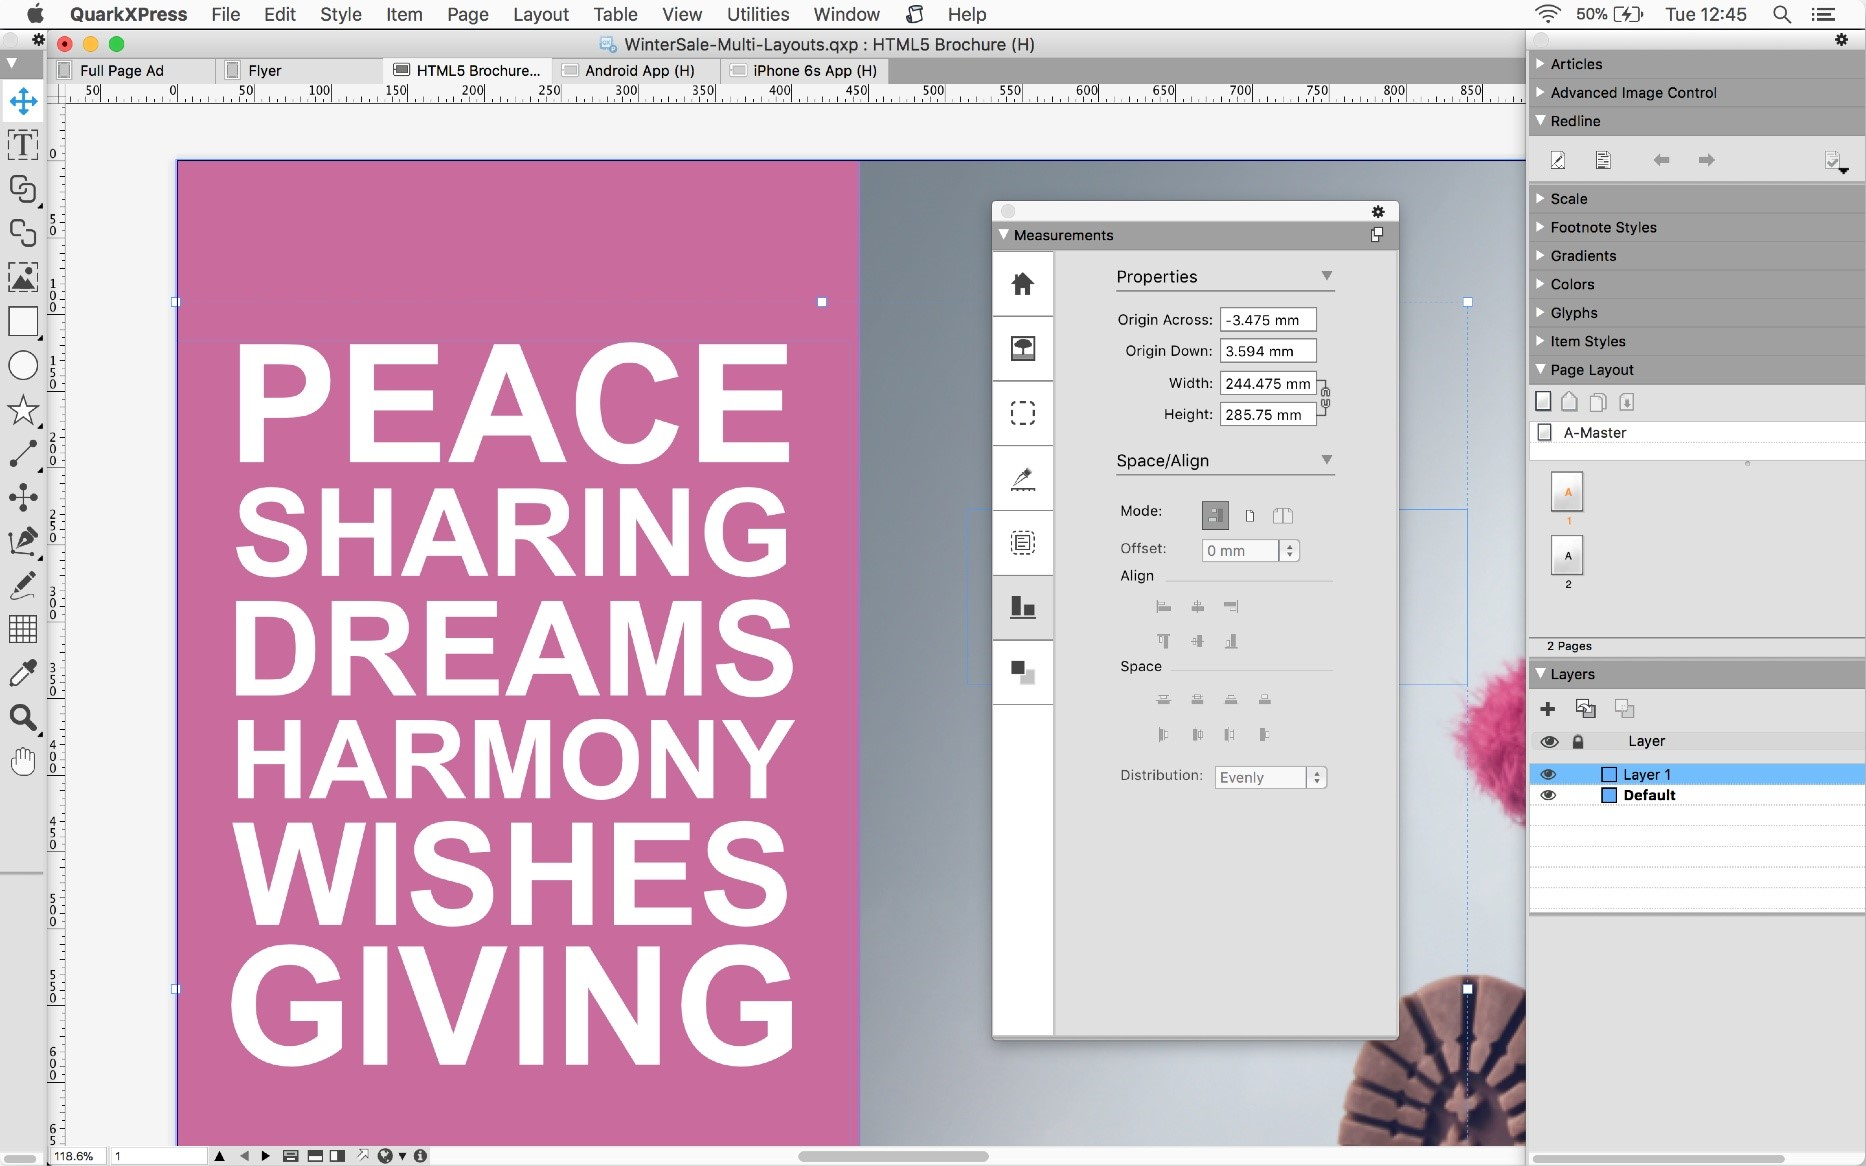 Adobe InDesign Alternatives for Mac - AlternativeTo net